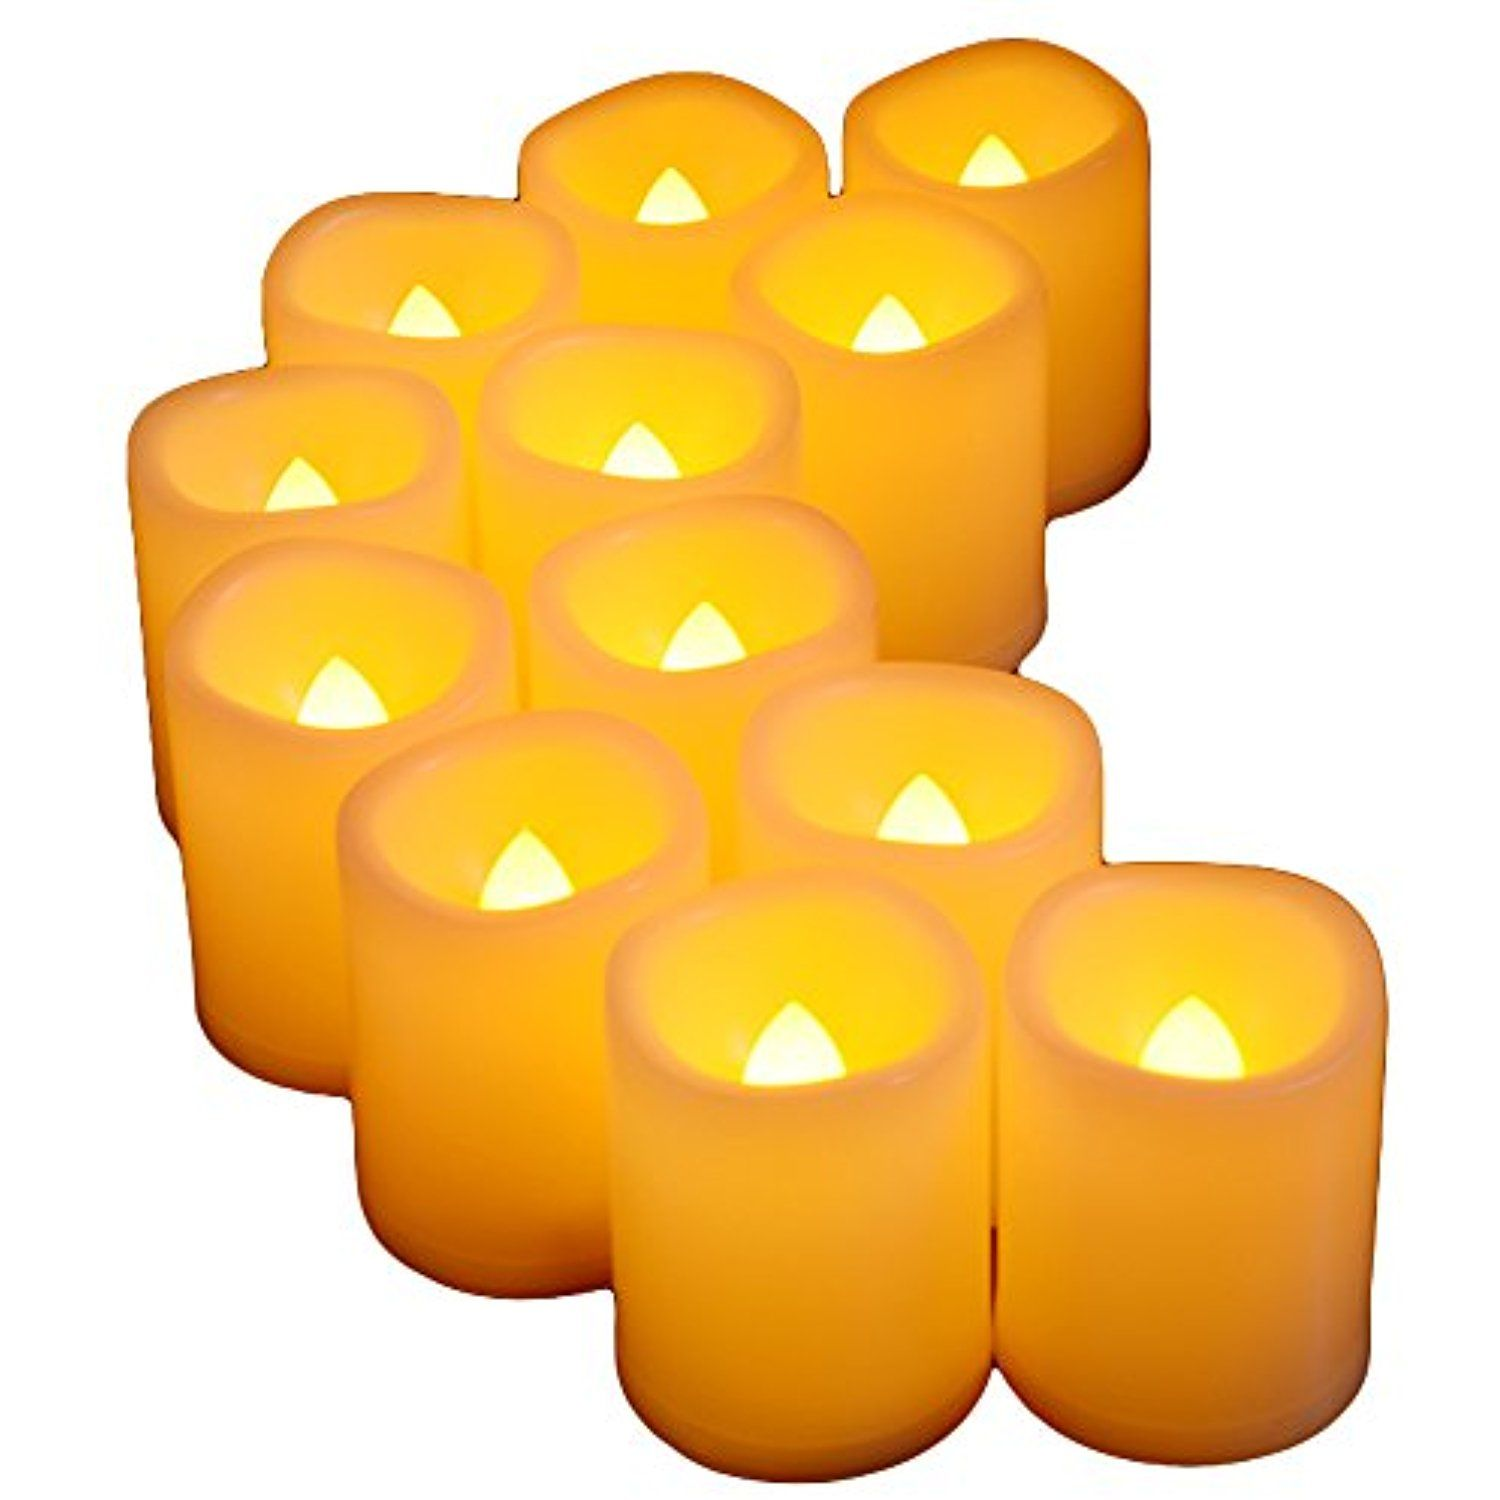 Flameless Votive Candles Flickering Led Flameless Votive Candles120 Hours Long Battery Life